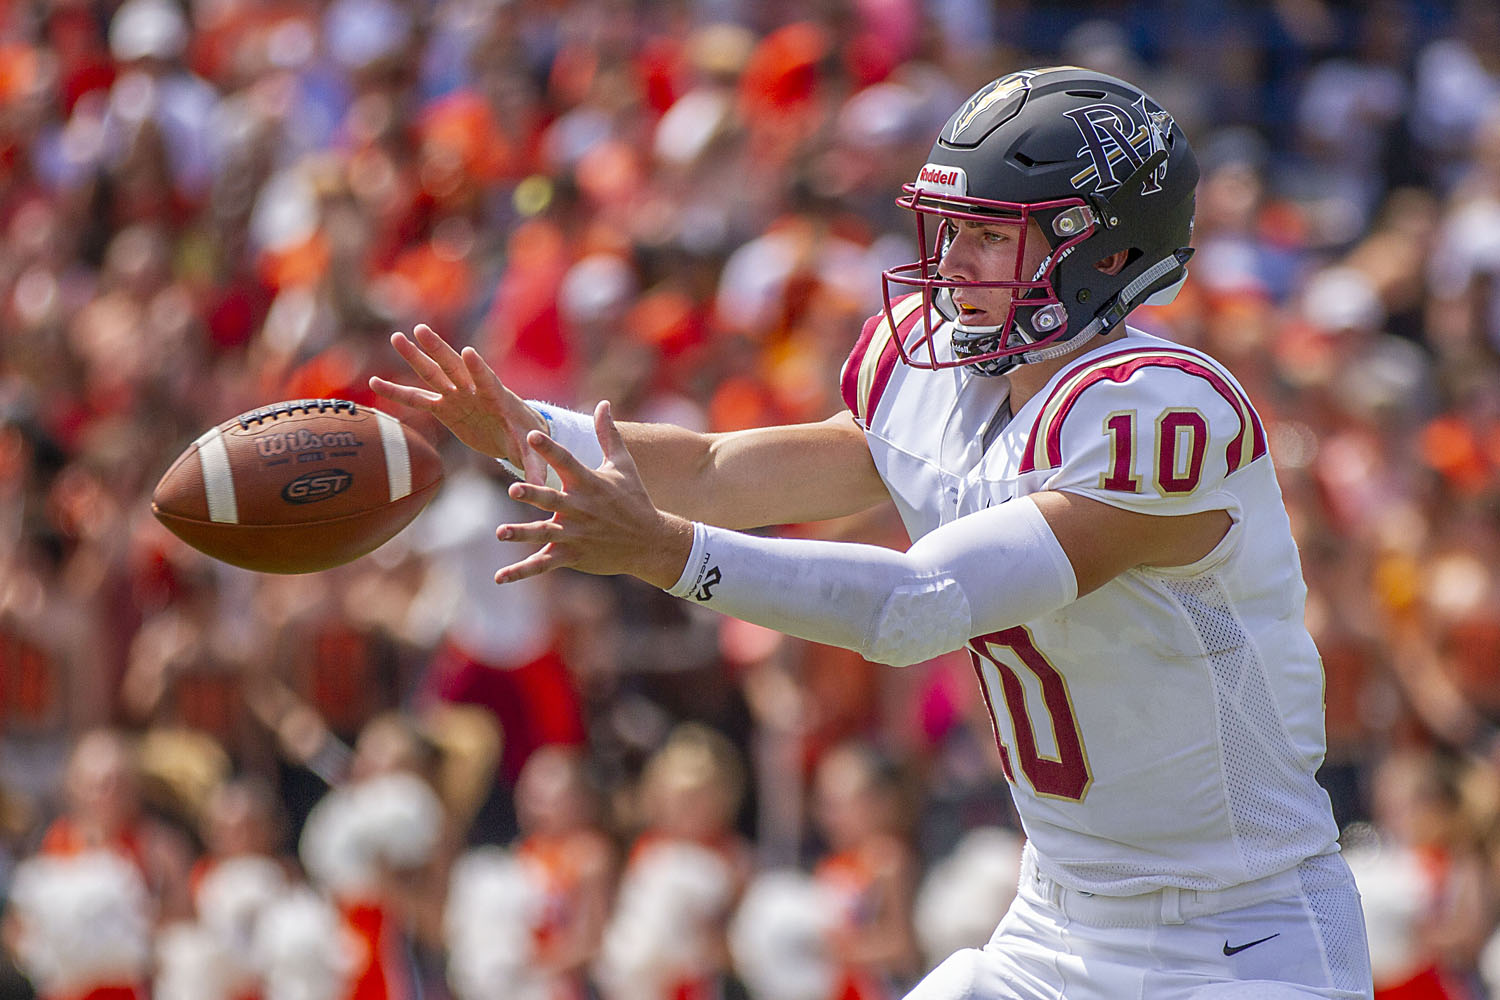 Home sweet Home: Bo Nix set to end high school career where his college career will begin